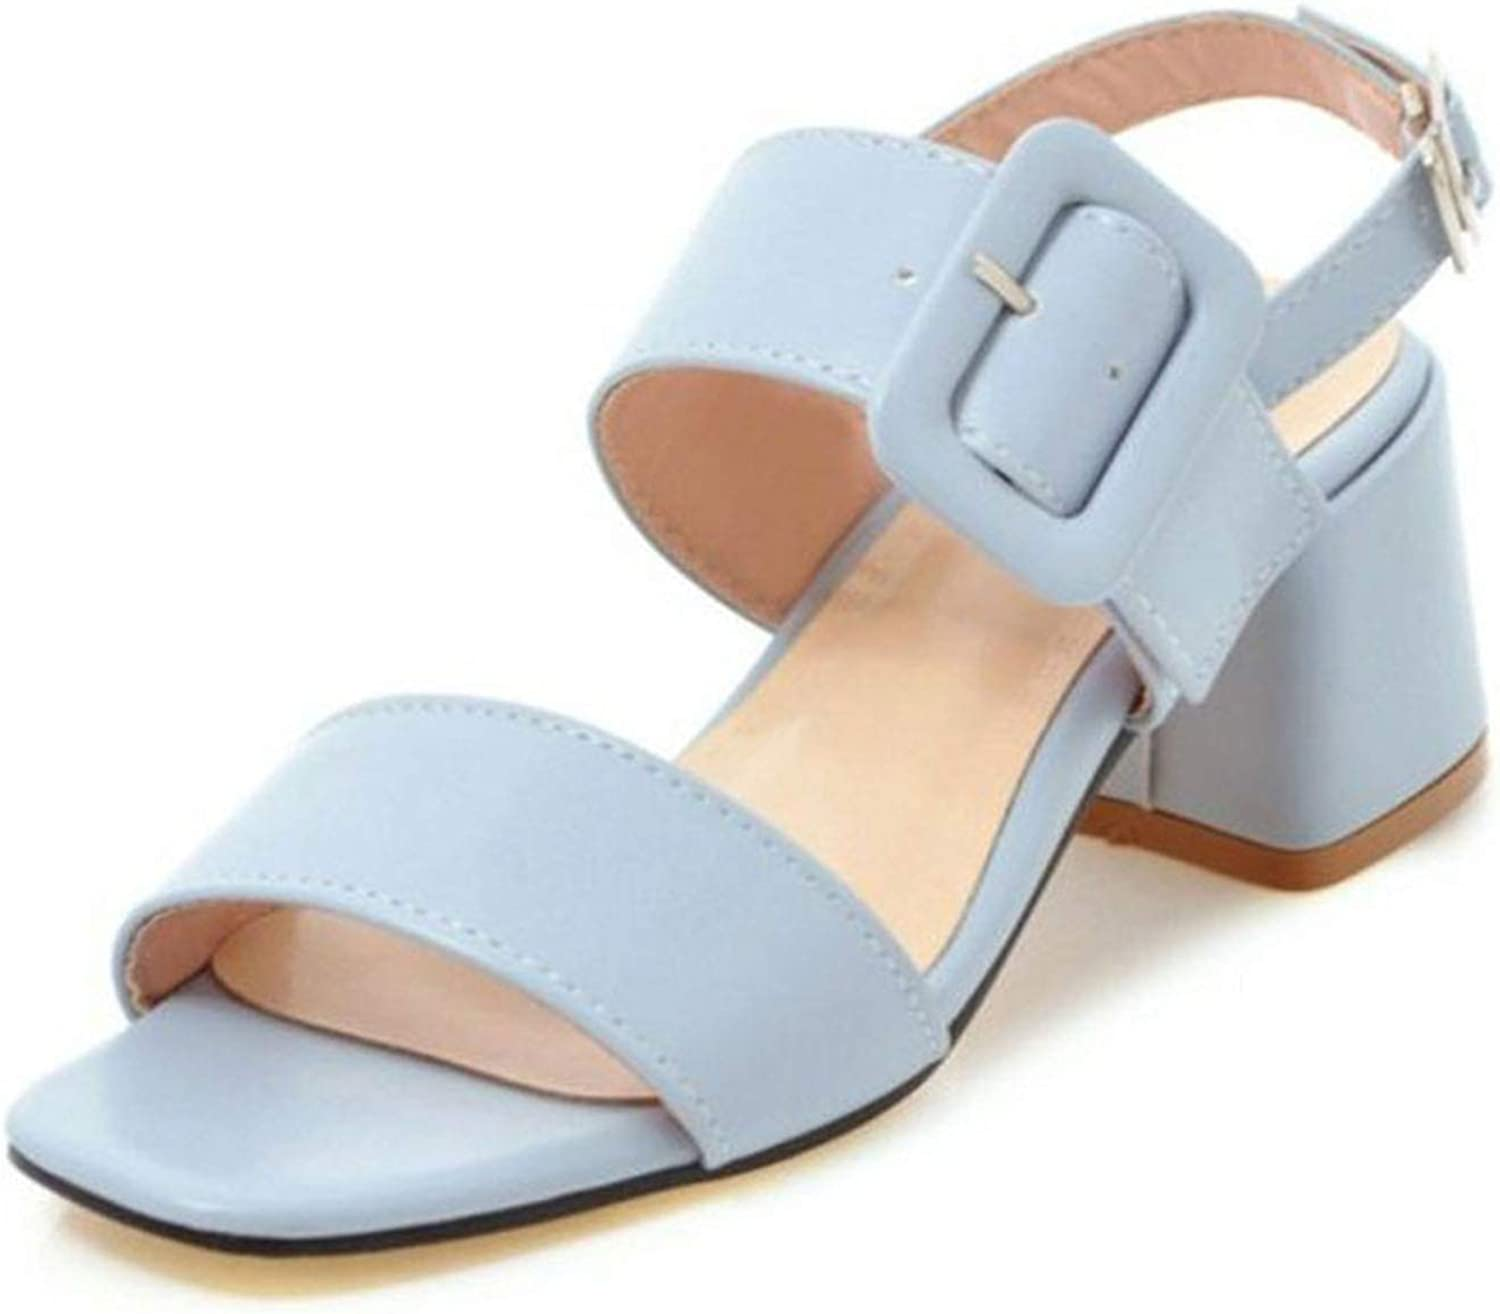 Office Lady High Heel Sandals Metal Buckle Open TPE Thick Heel Sandals shoes Women's Footwear